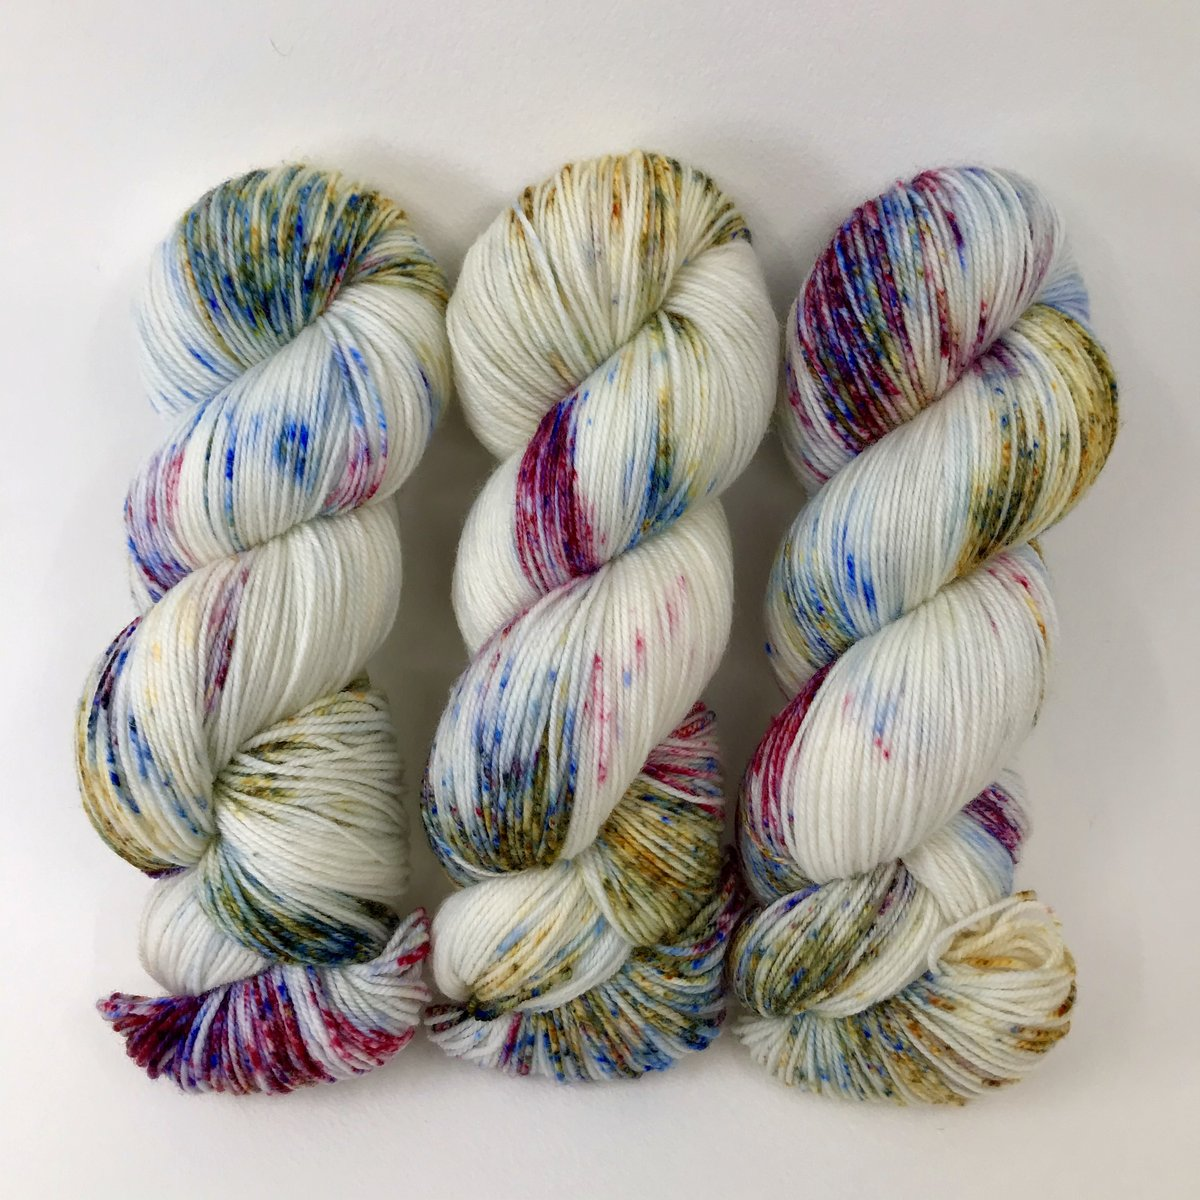 Celebration - Indulgence Lace - Dyed Stock